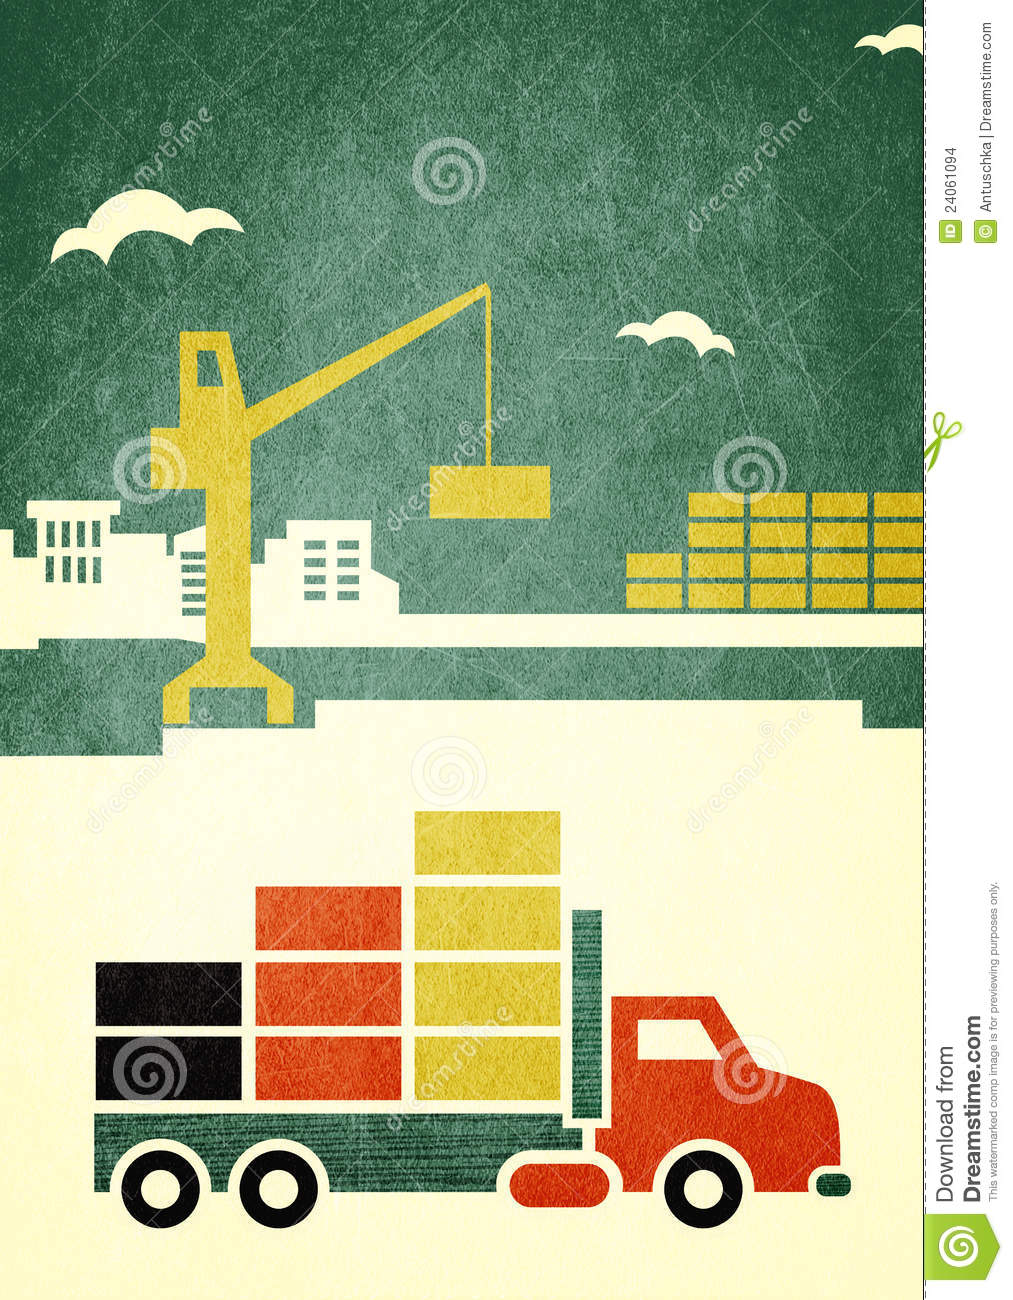 cargo truck graph 24061094 cargo truck graph stock illustration illustration of diagram 24061094